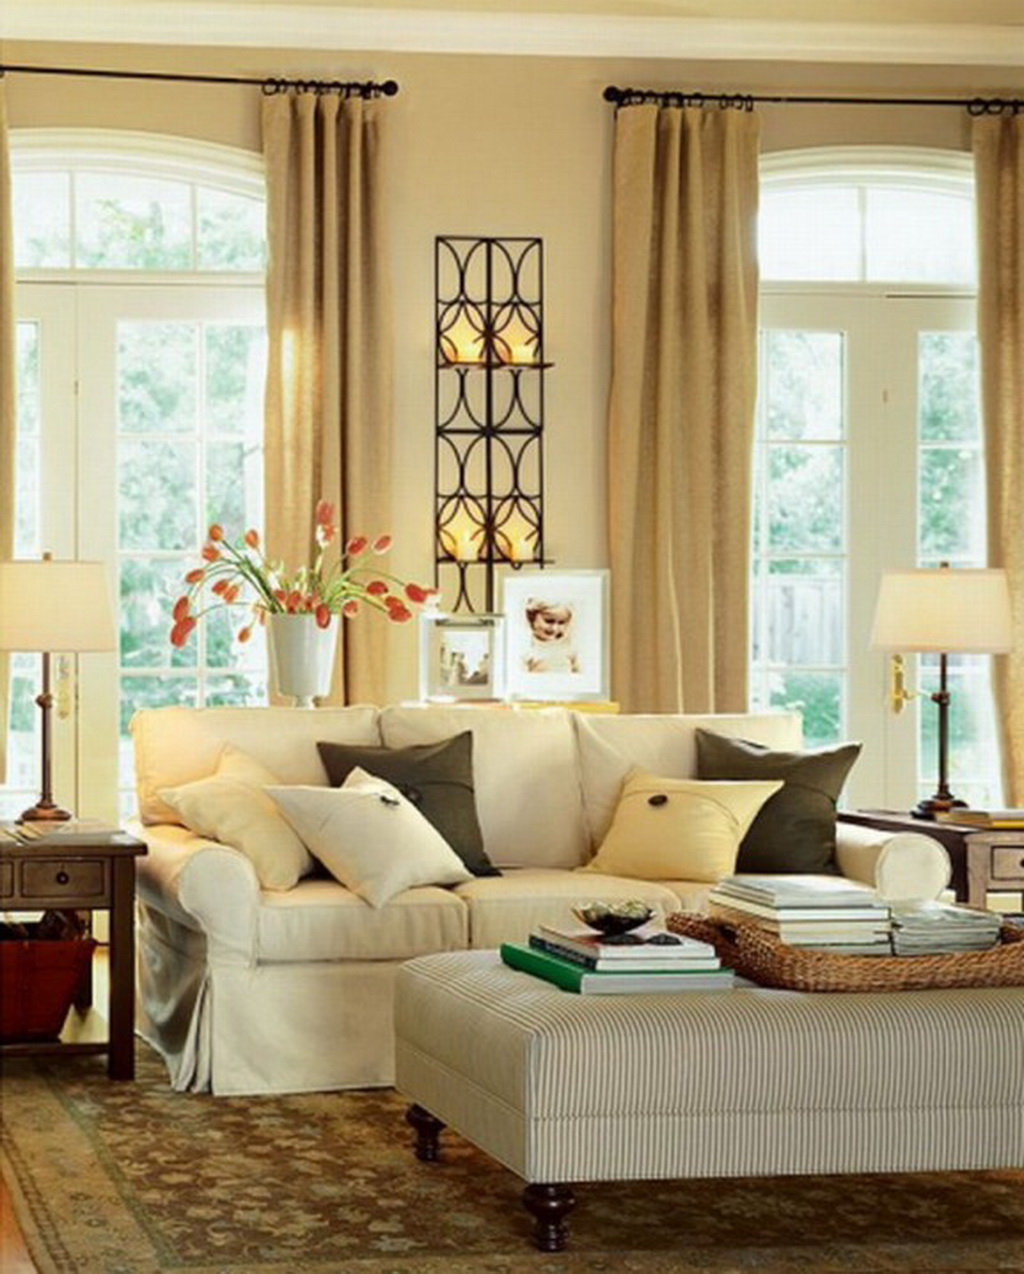 : 1024 x 1274 Pixel | Size: unknown bytes | Category: Living Room ...